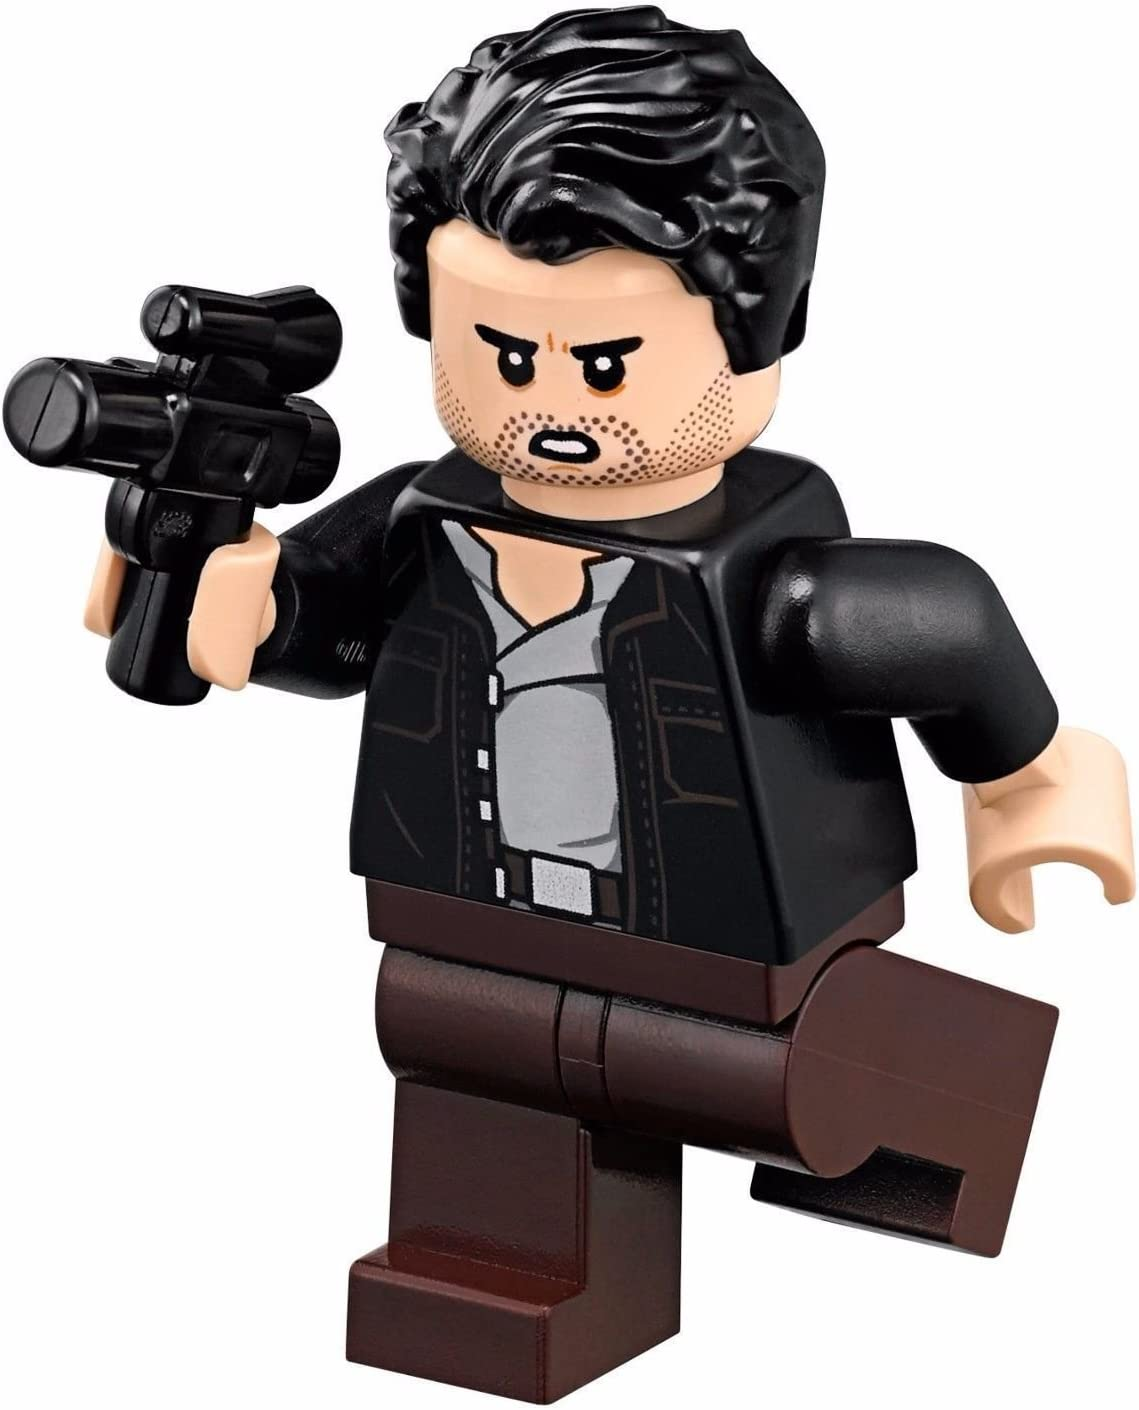 LEGO Star Wars Episode 8 Minifigure - Captain Poe Dameron with Black Jacket (75189)